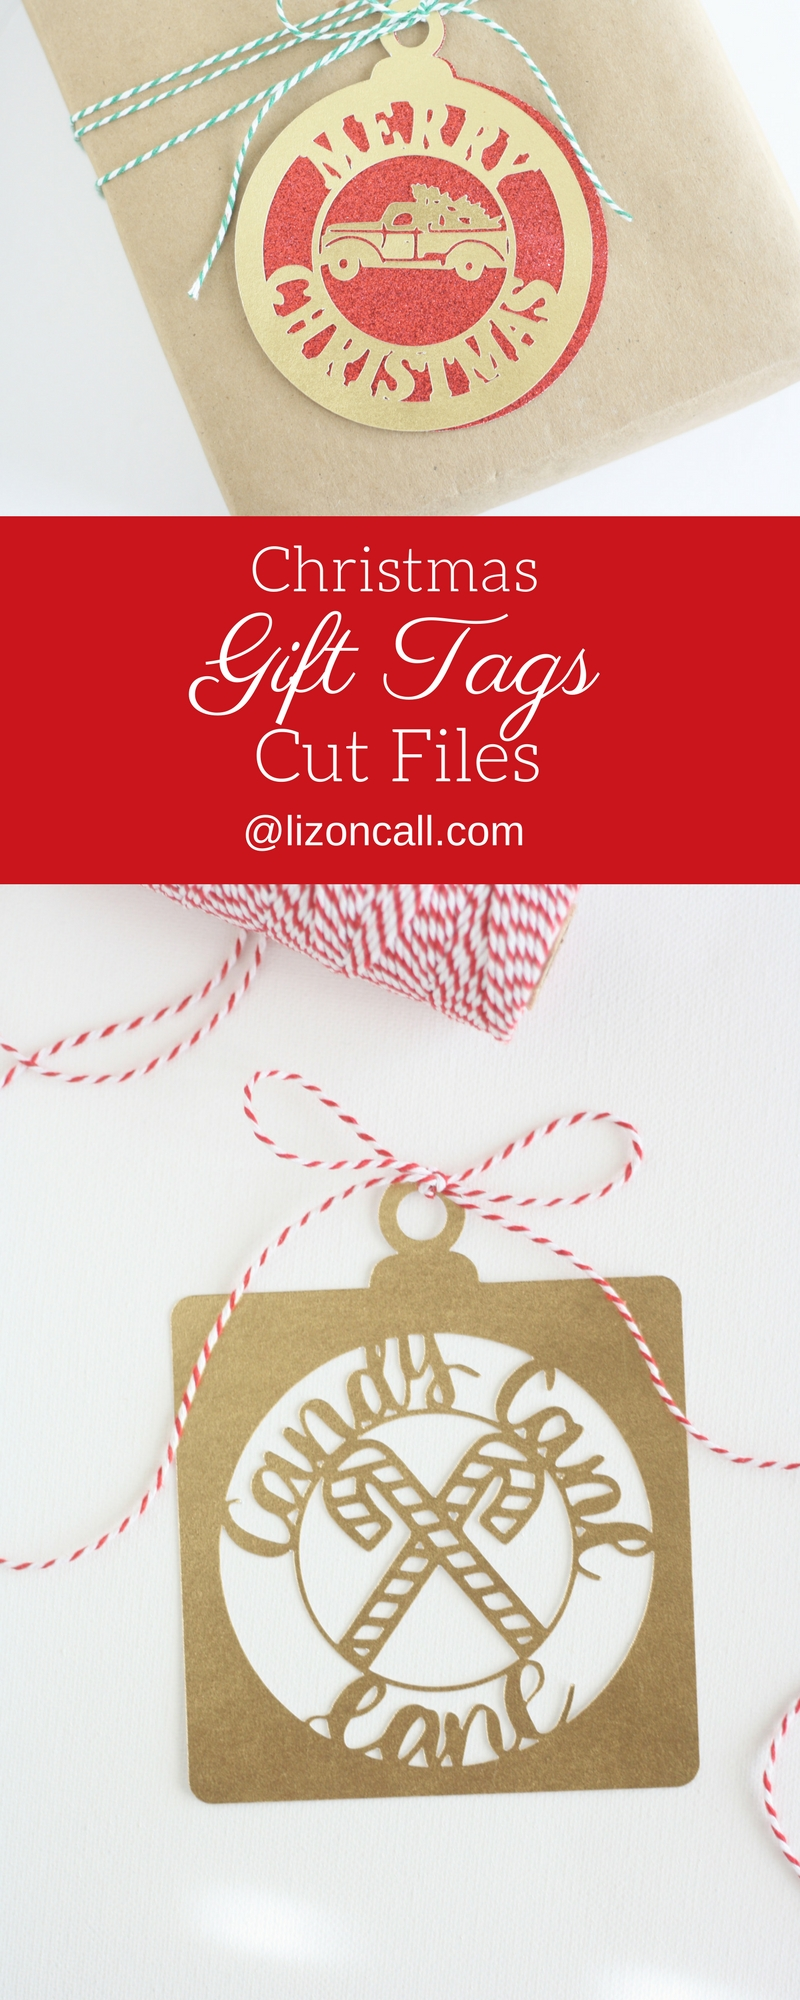 Christmas gift tags and cards svg cut files. Over 30 elements to create unique Christmas gift tags and cards for your friends and family.